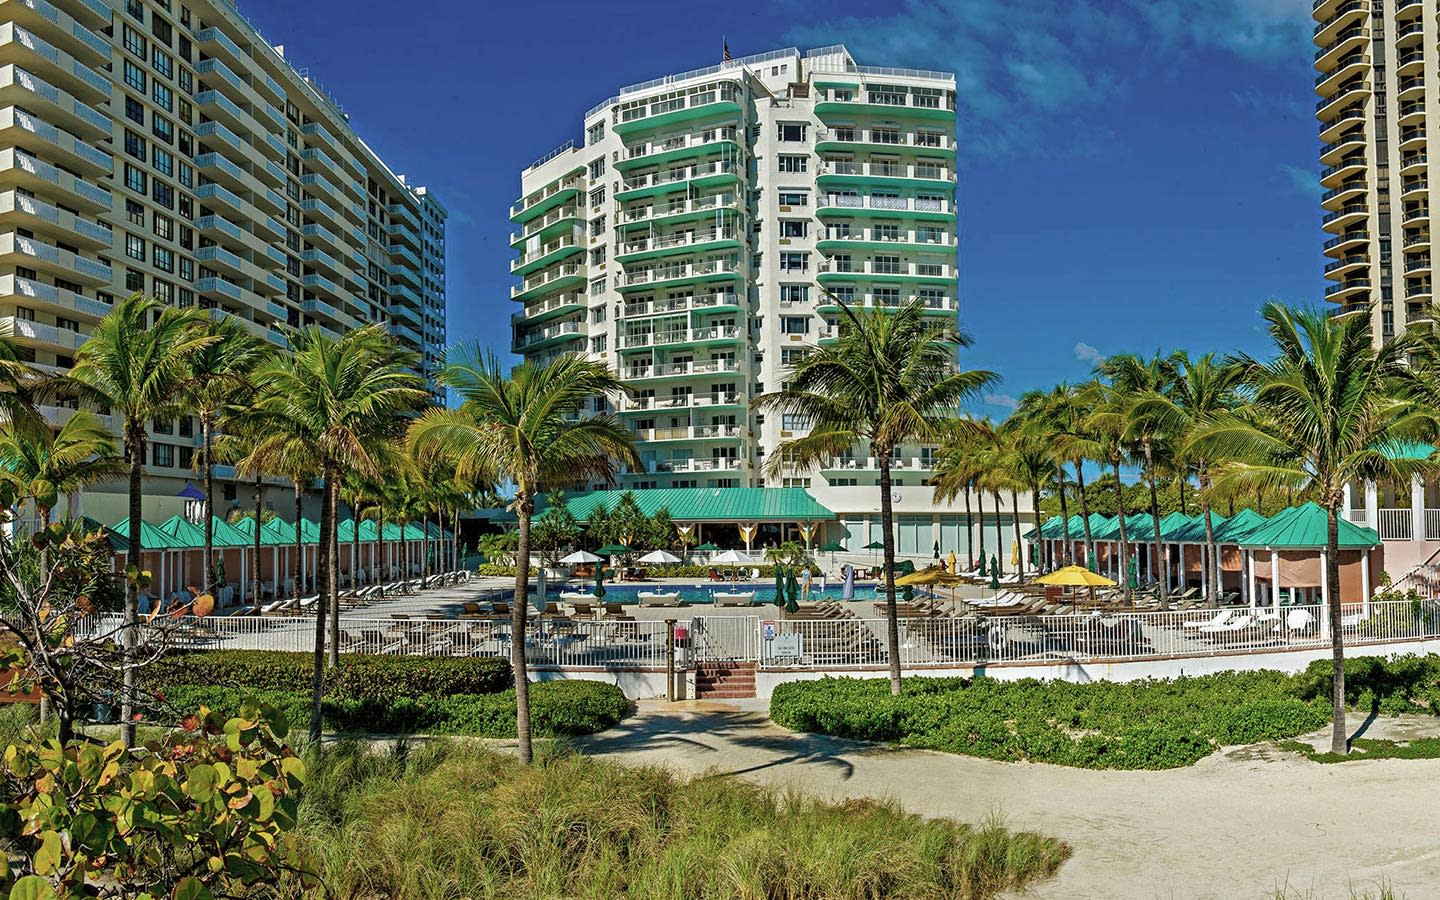 Sea View Hotel Bal Harbour